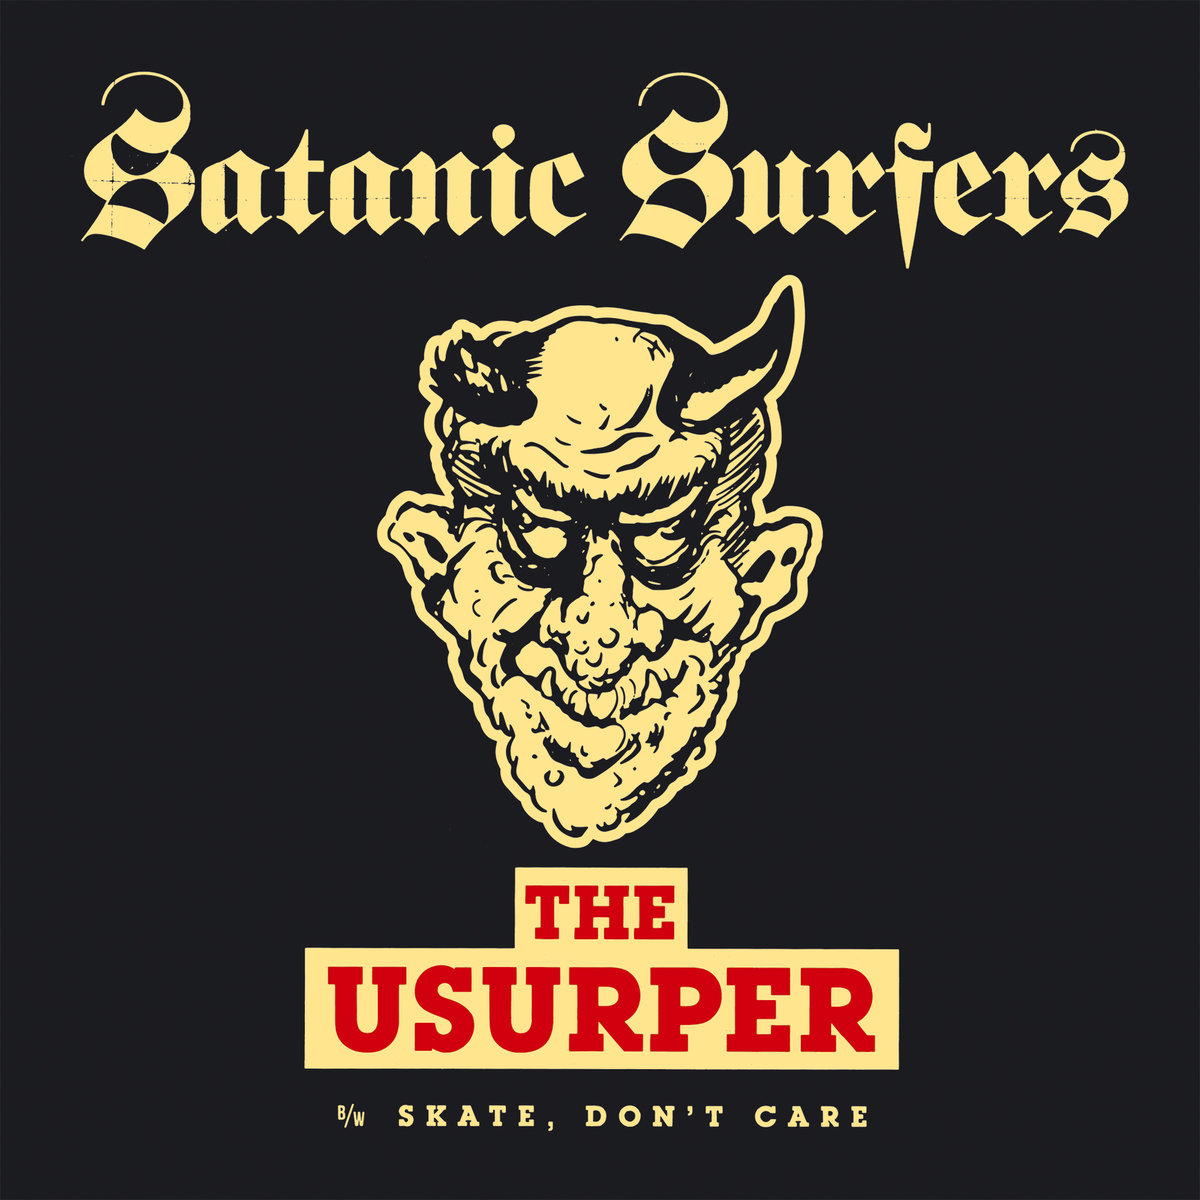 satanic-surfers-the-usurper